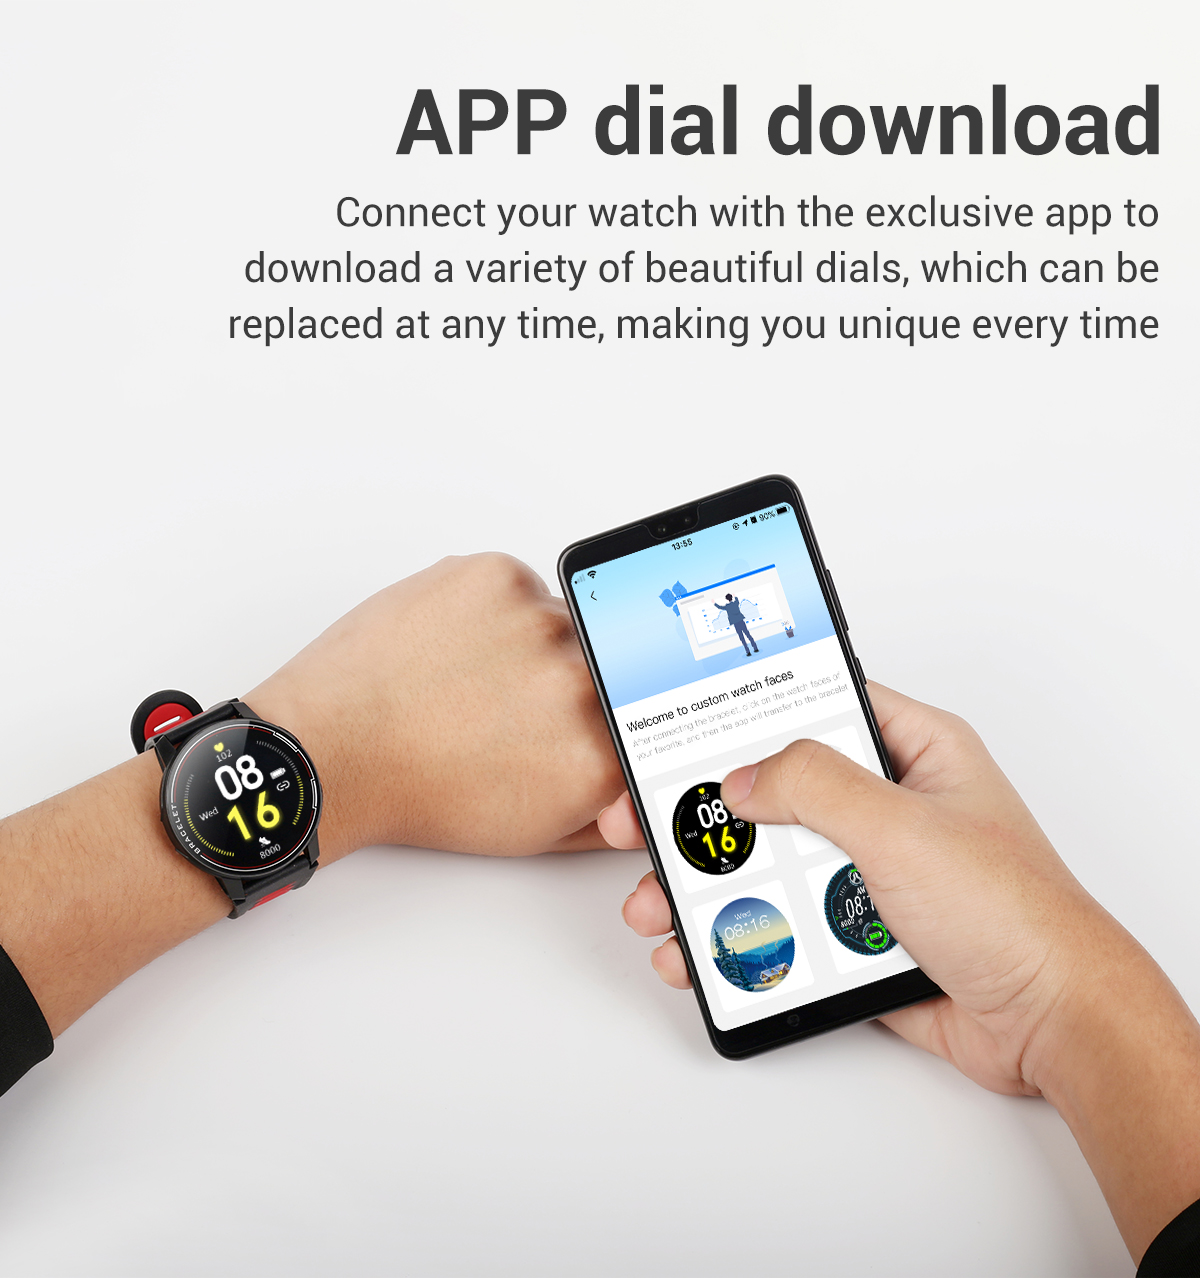 H73dc2ed7e23e46699022e326993991aaG 2020 New L6 Smart Watch IP68 Waterproof Sport Men Women Bluetooth Smartwatch Fitness Tracker Heart Rate Monitor For Android IOS